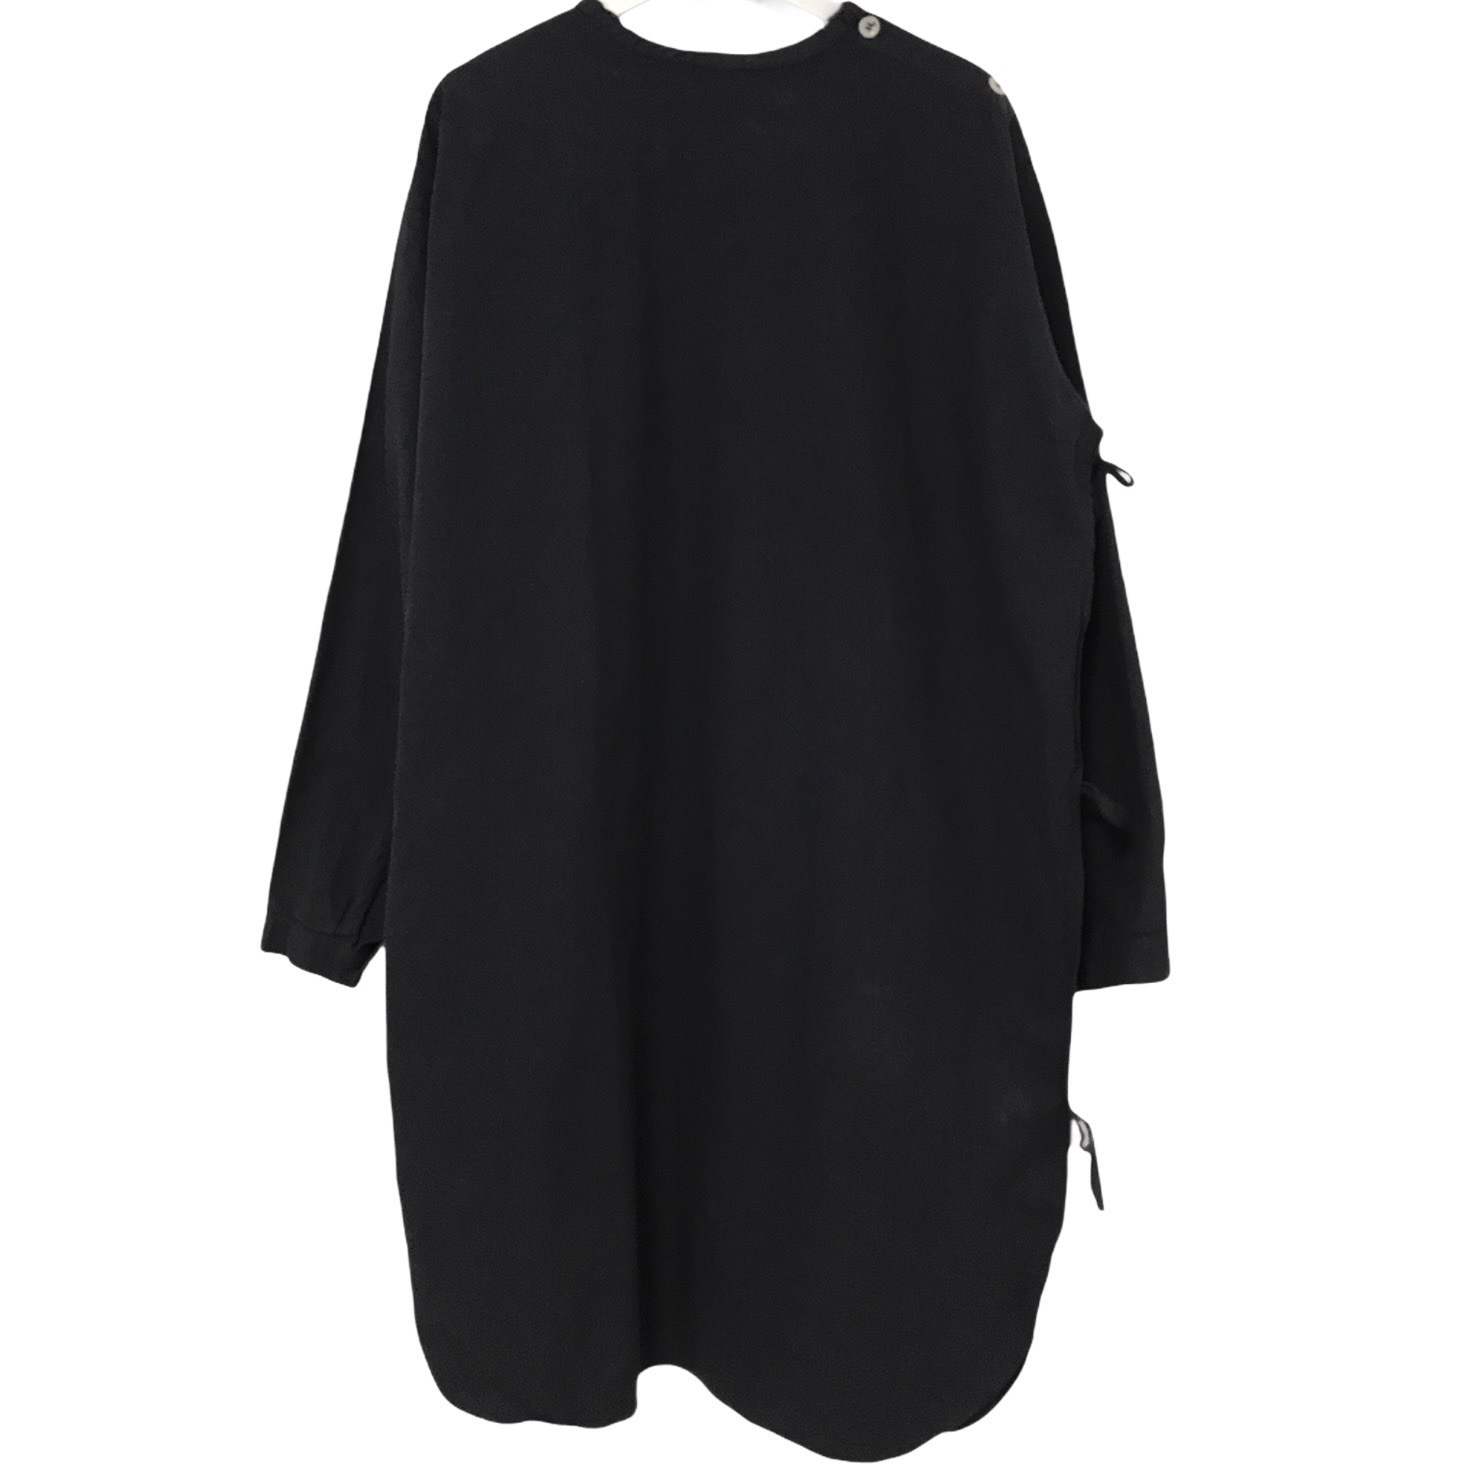 Dead Stock Swedish Army Surgical Gown 42 Black